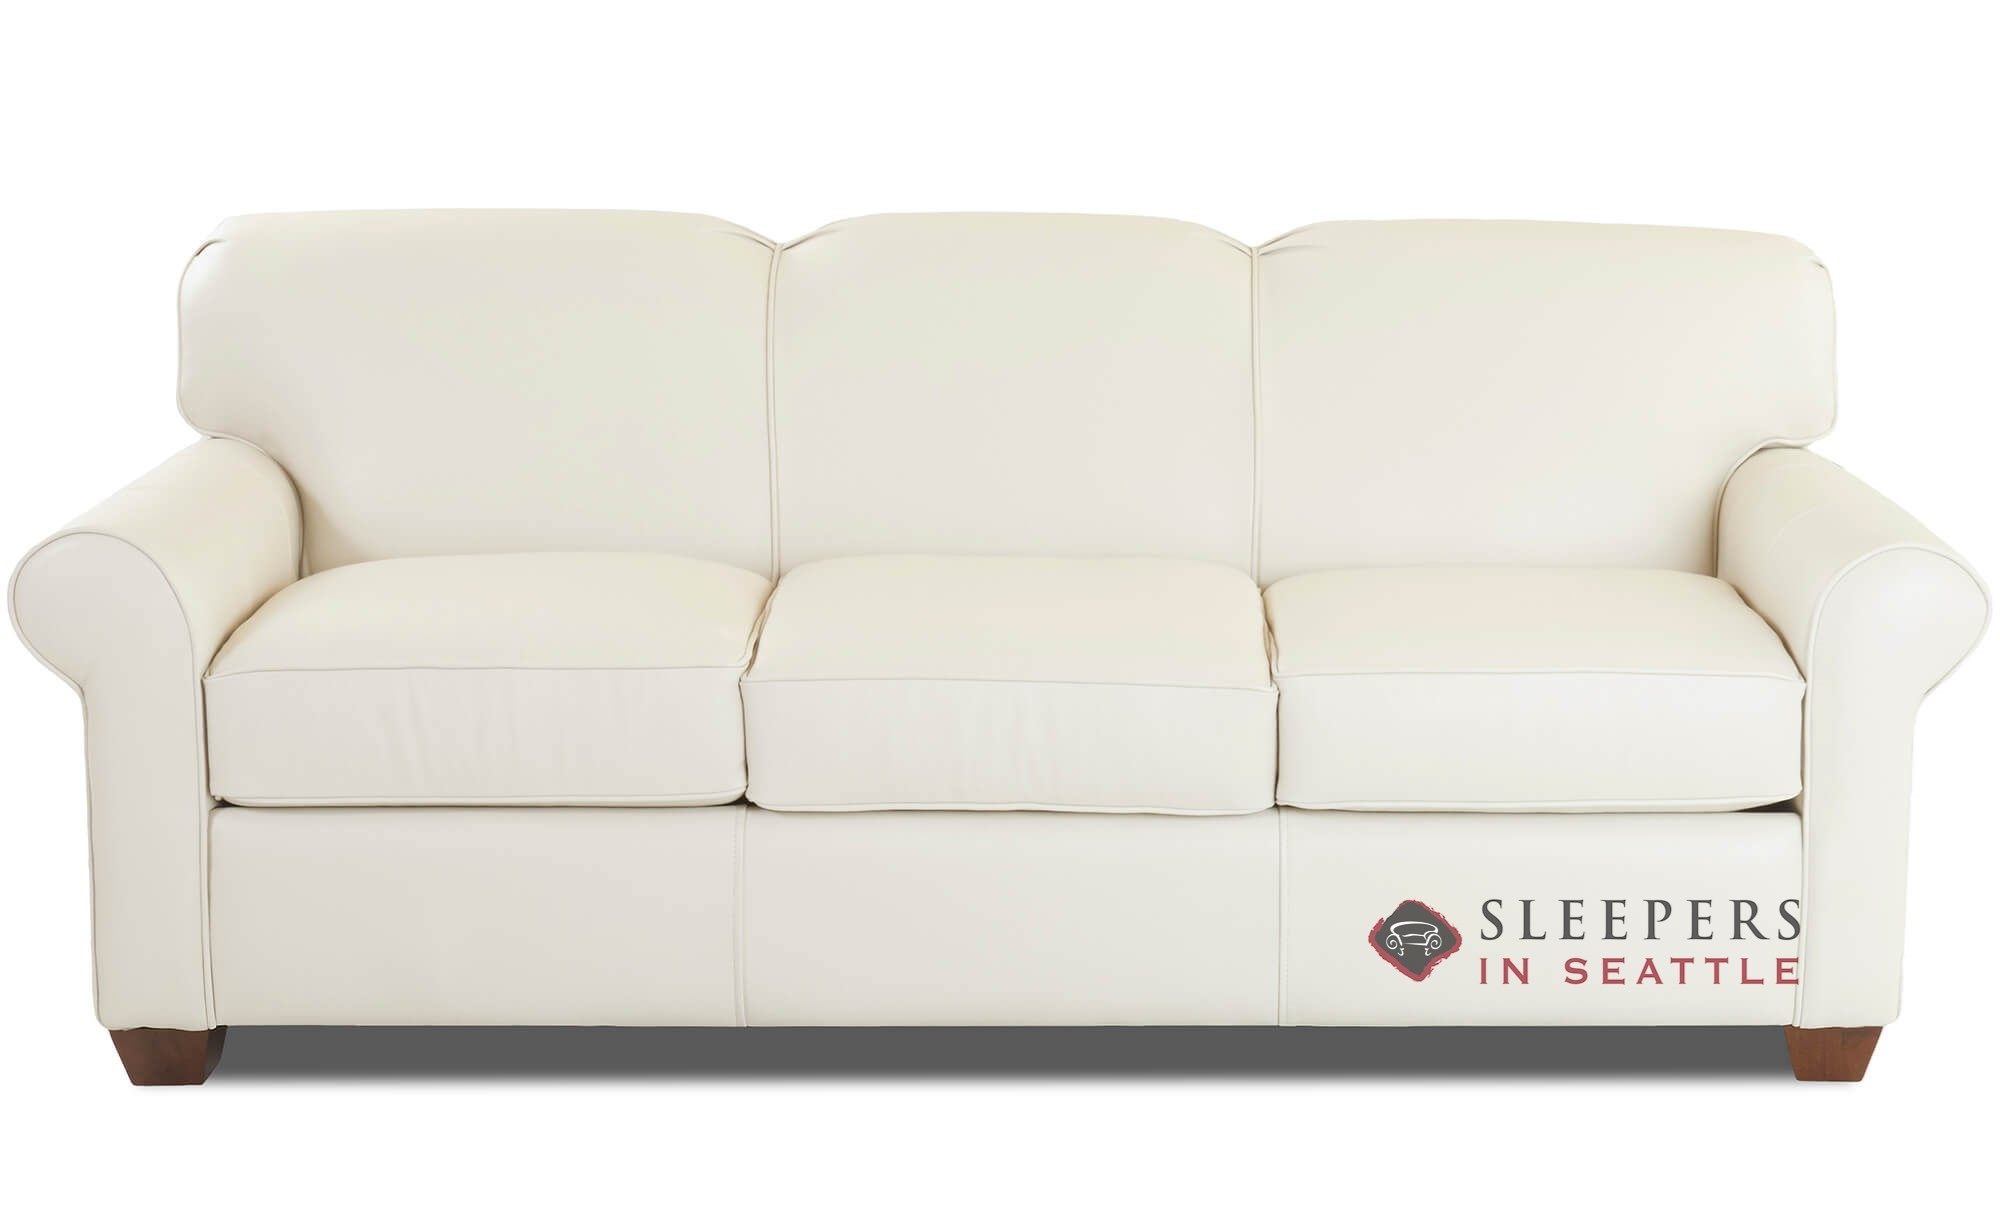 Wondrous Savvy Calgary Leather Queen Sleeper Sofa Ncnpc Chair Design For Home Ncnpcorg